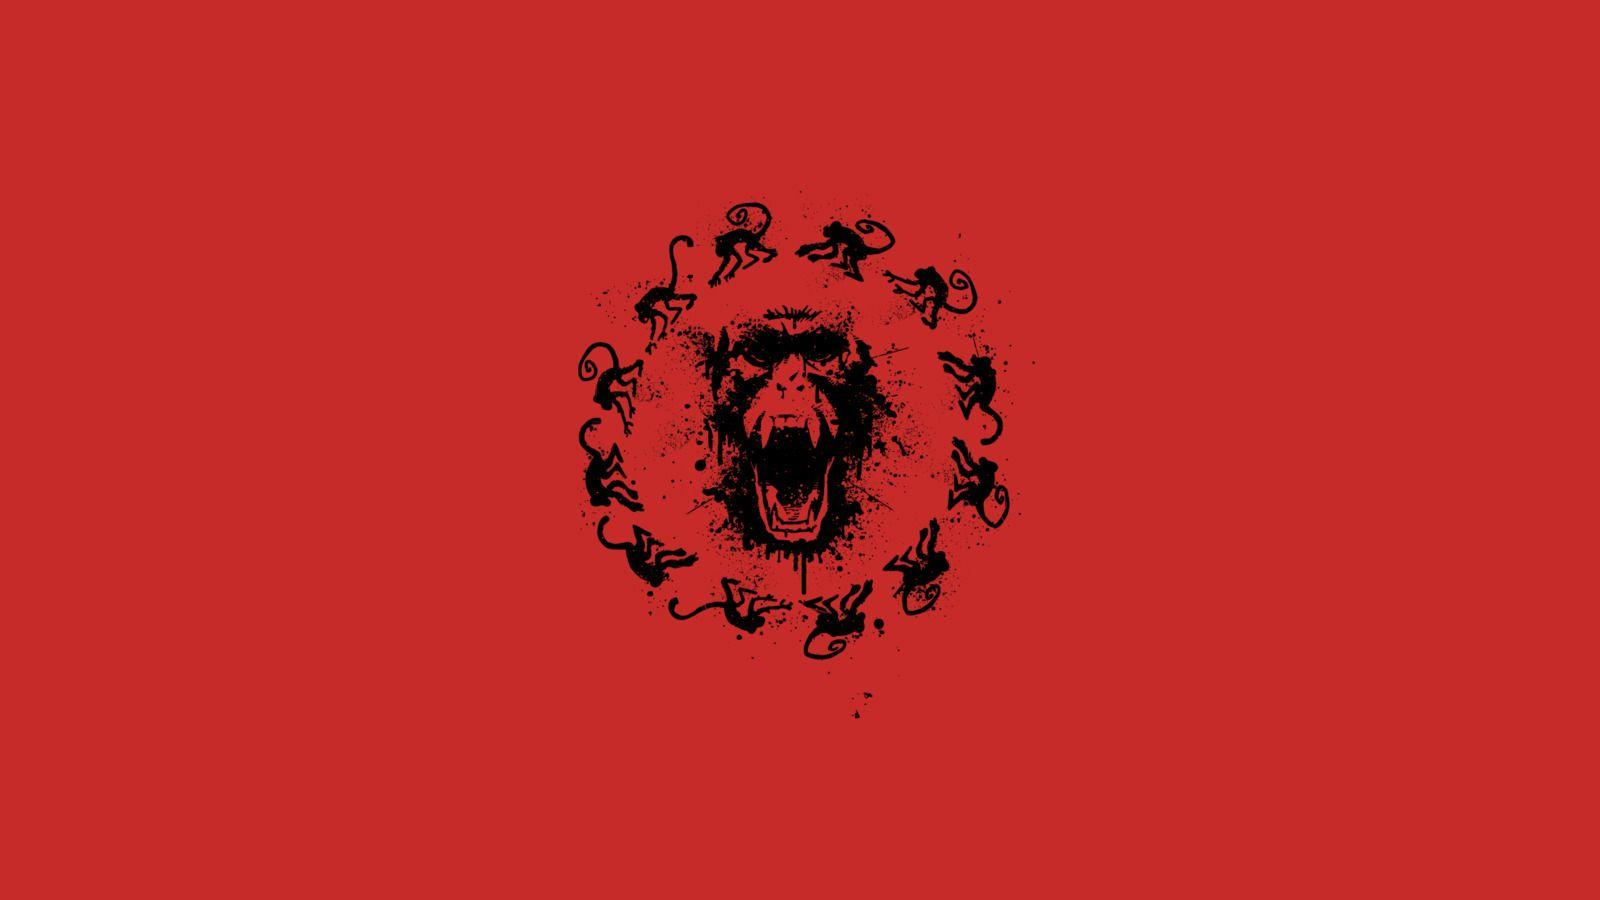 12 monkeys minimalism Wallpapers HD / Desktop and Mobile Backgrounds